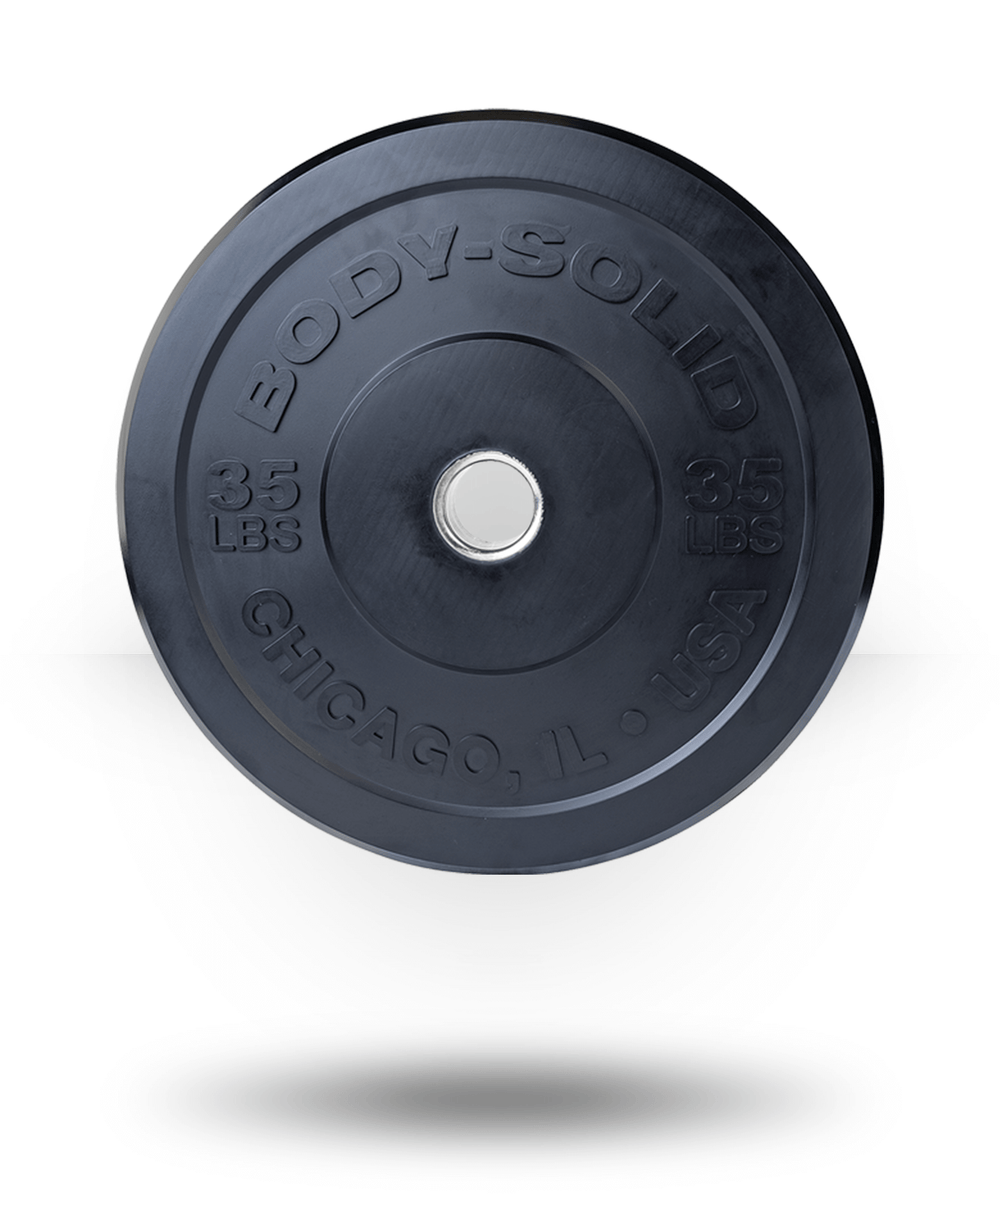 Body-Solid Chicago Extreme Bumper Plate 35 lb